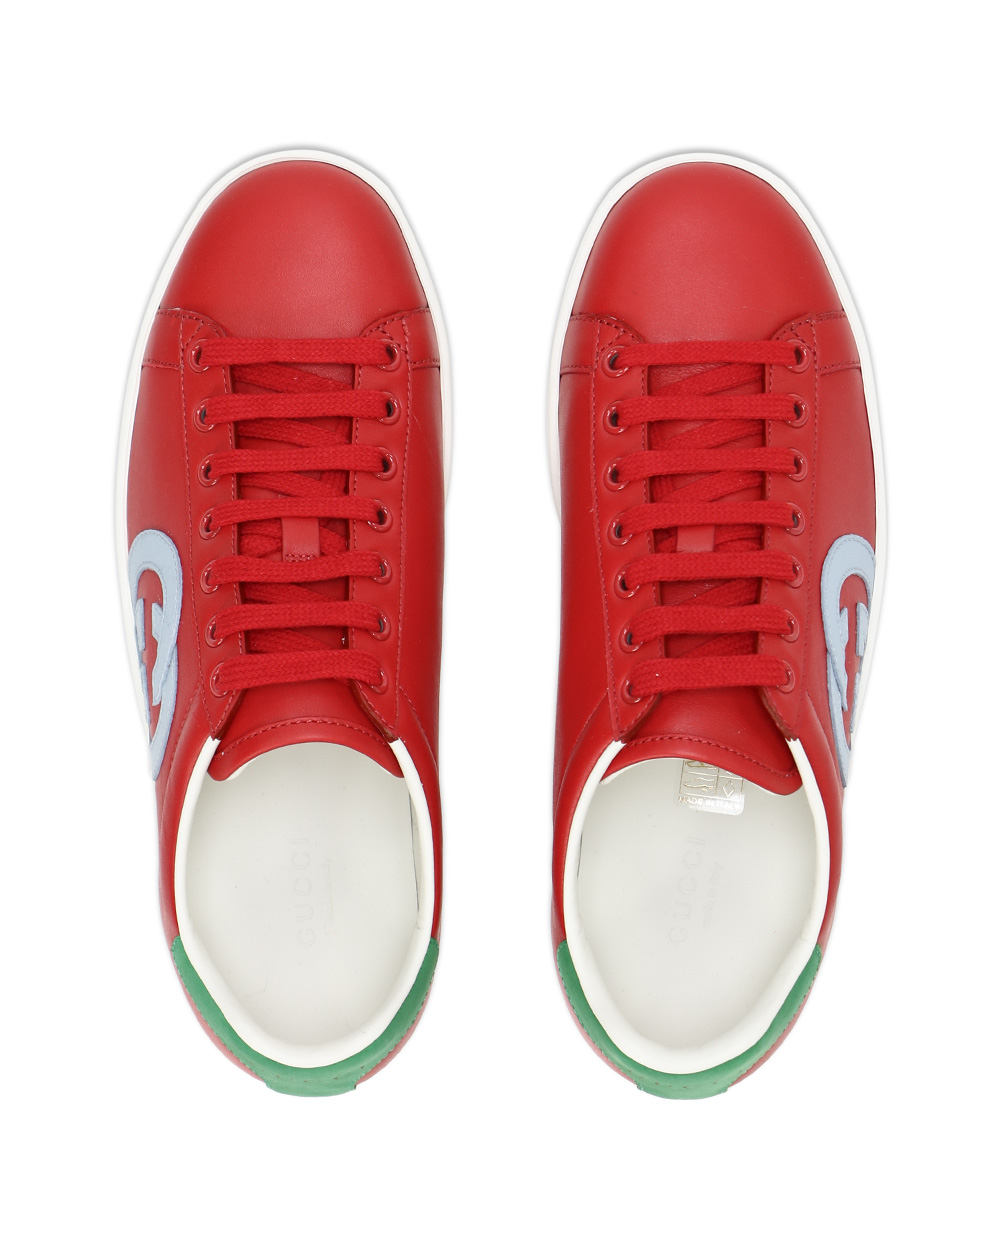 GG Leather Sneakers 3